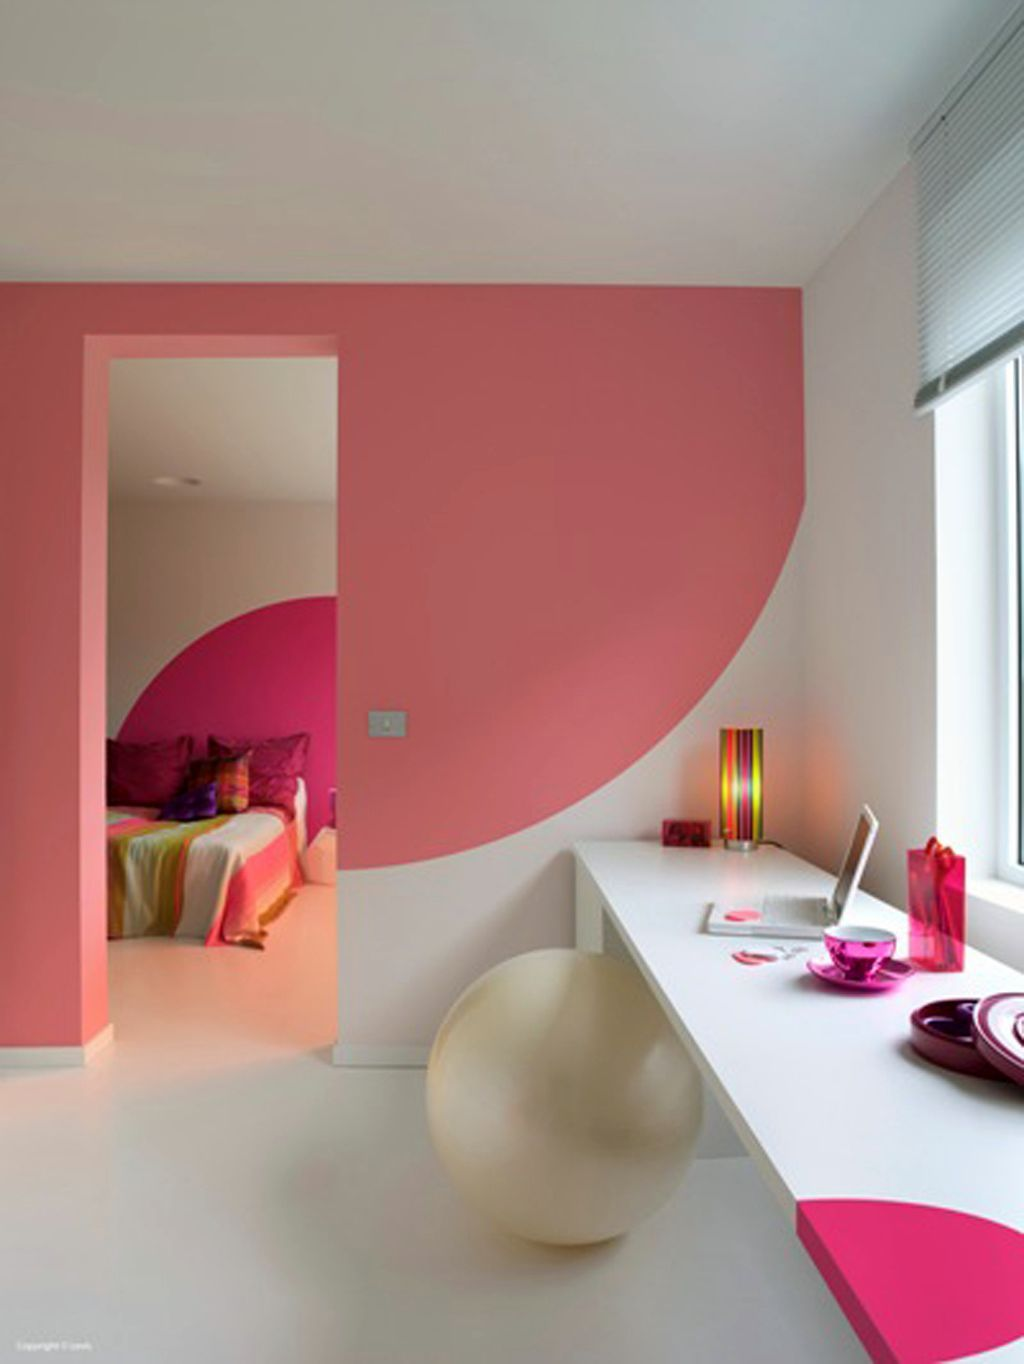 image cool bedroom paint designs half circle pink cool wall painting designs - Design Of Wall Painting